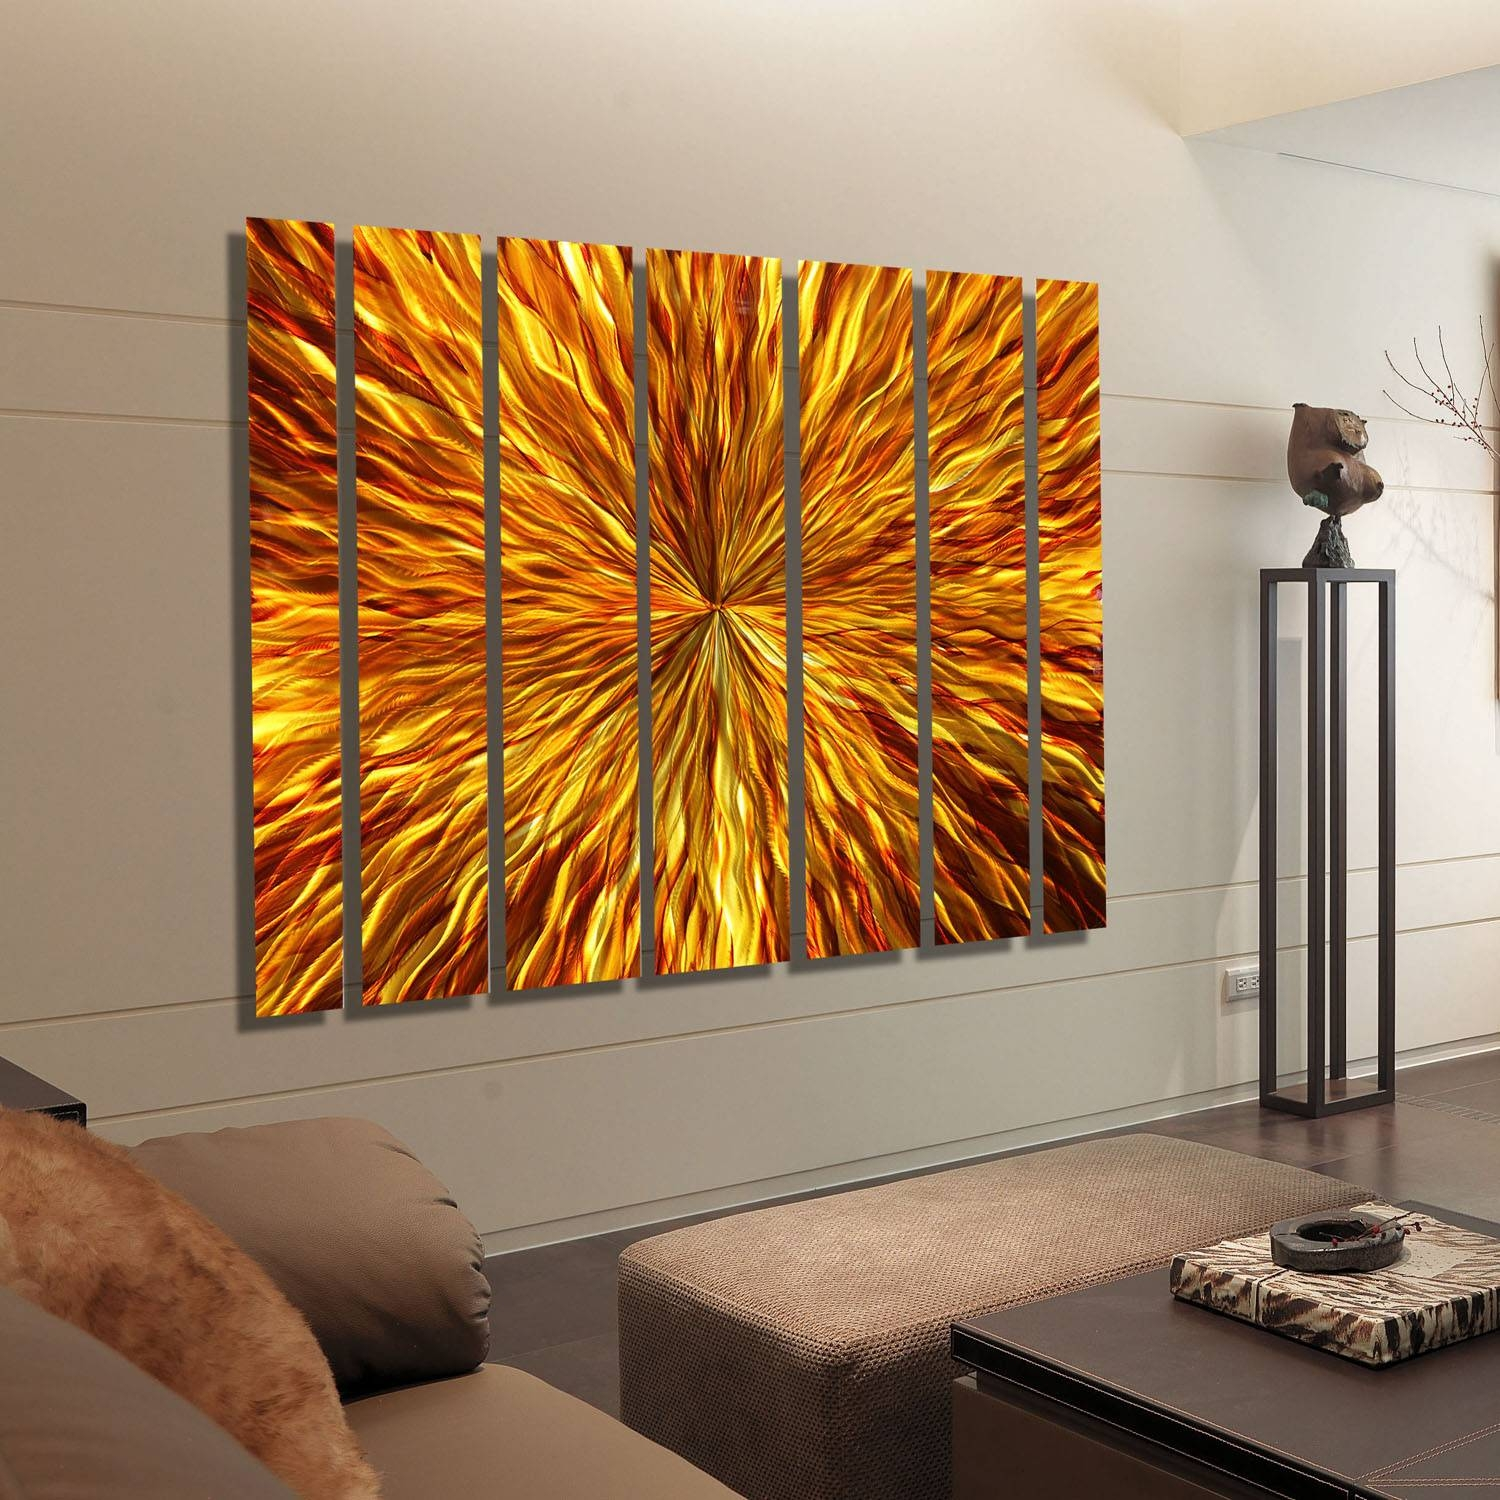 Amber Vortex Xl – Extra Large Modern Metal Wall Artjon Allen For Best And Newest Large Modern Wall Art (View 3 of 20)